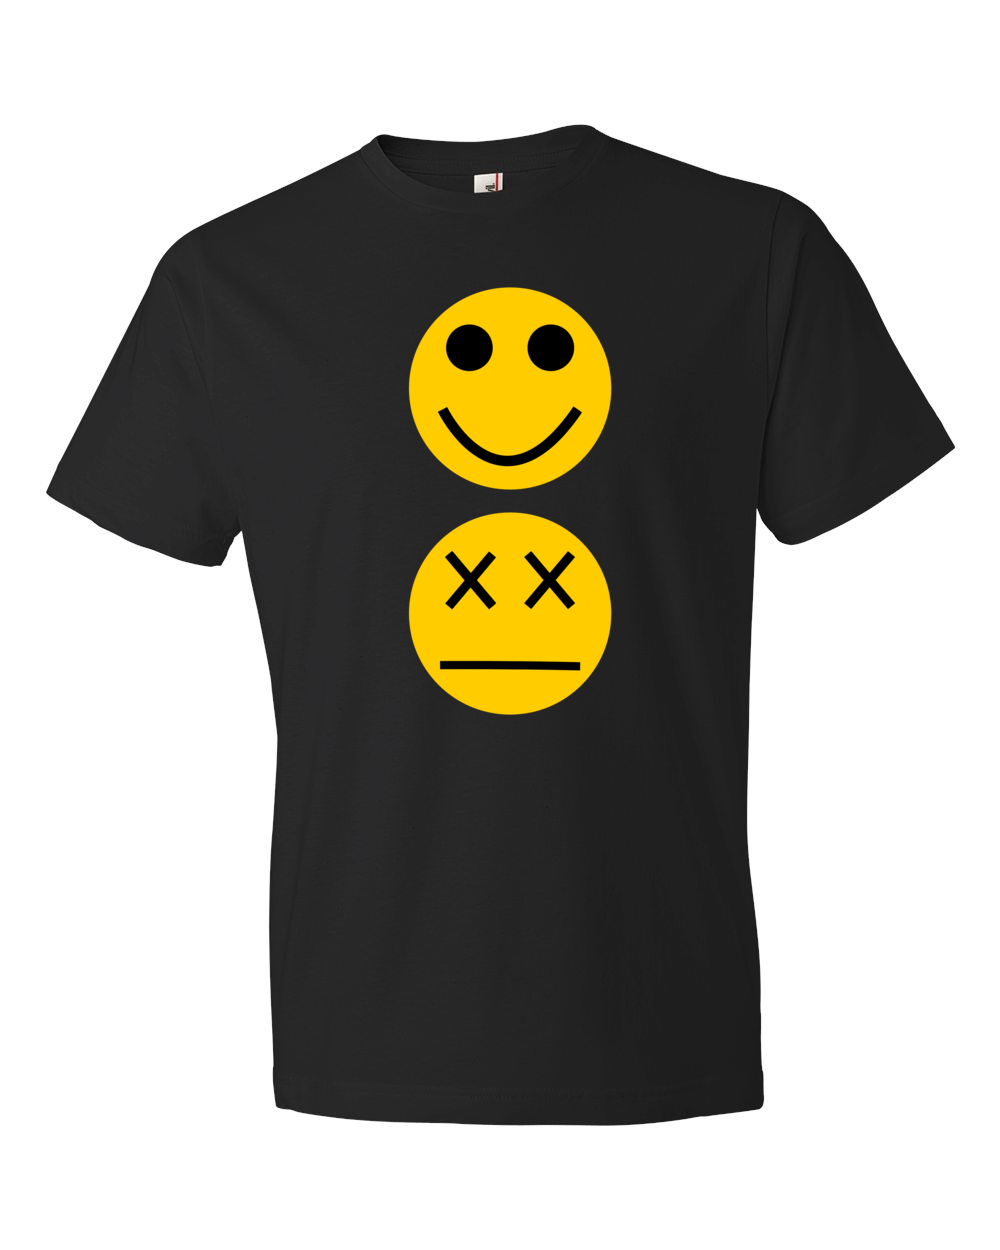 Smiley-Lightweight-Fashion-Short-Sleeve-T-Shirt-by-iTEE.com